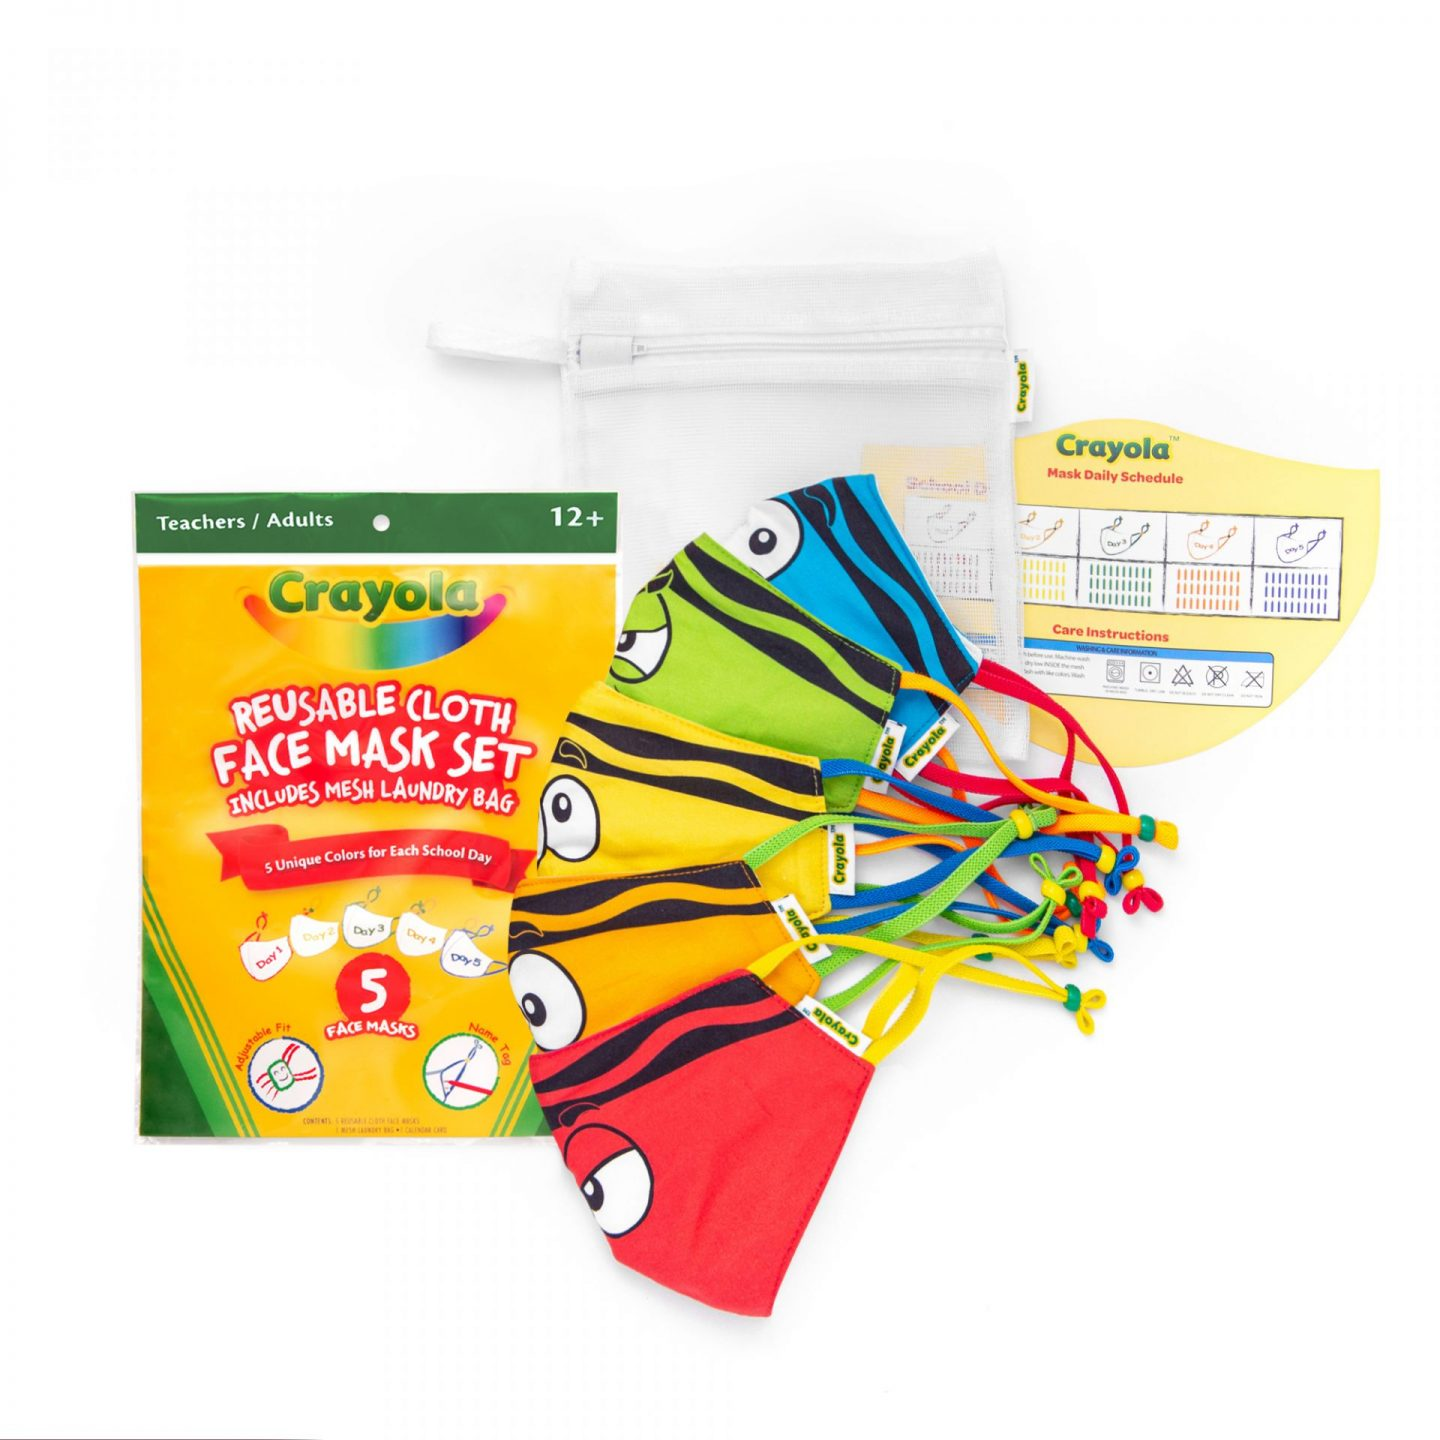 Crayola Reusable Washable Face Mask Set for School